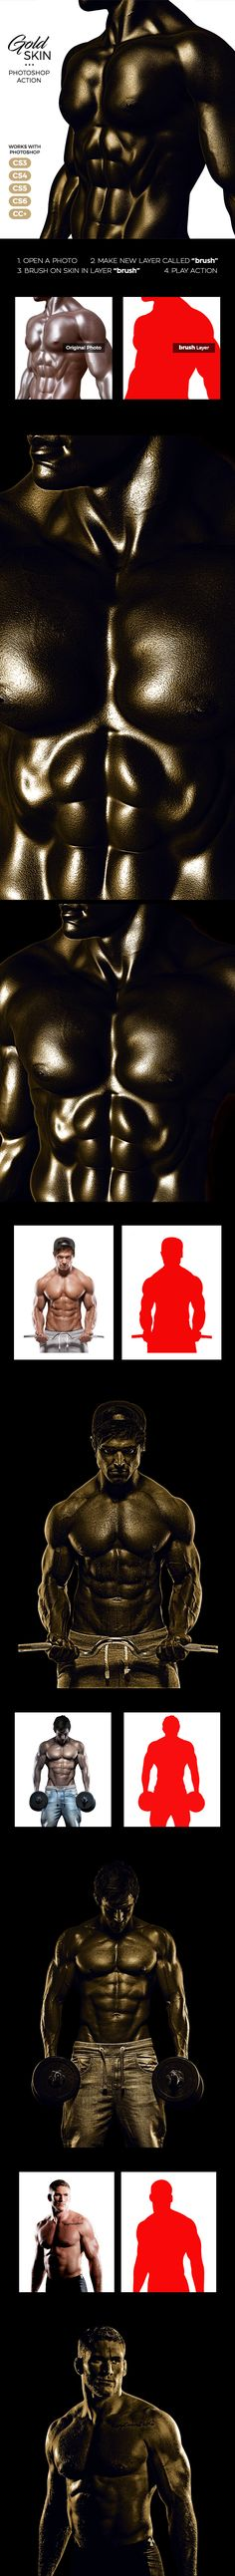 Gold Skin Photoshop Action - Photo Effects Actions